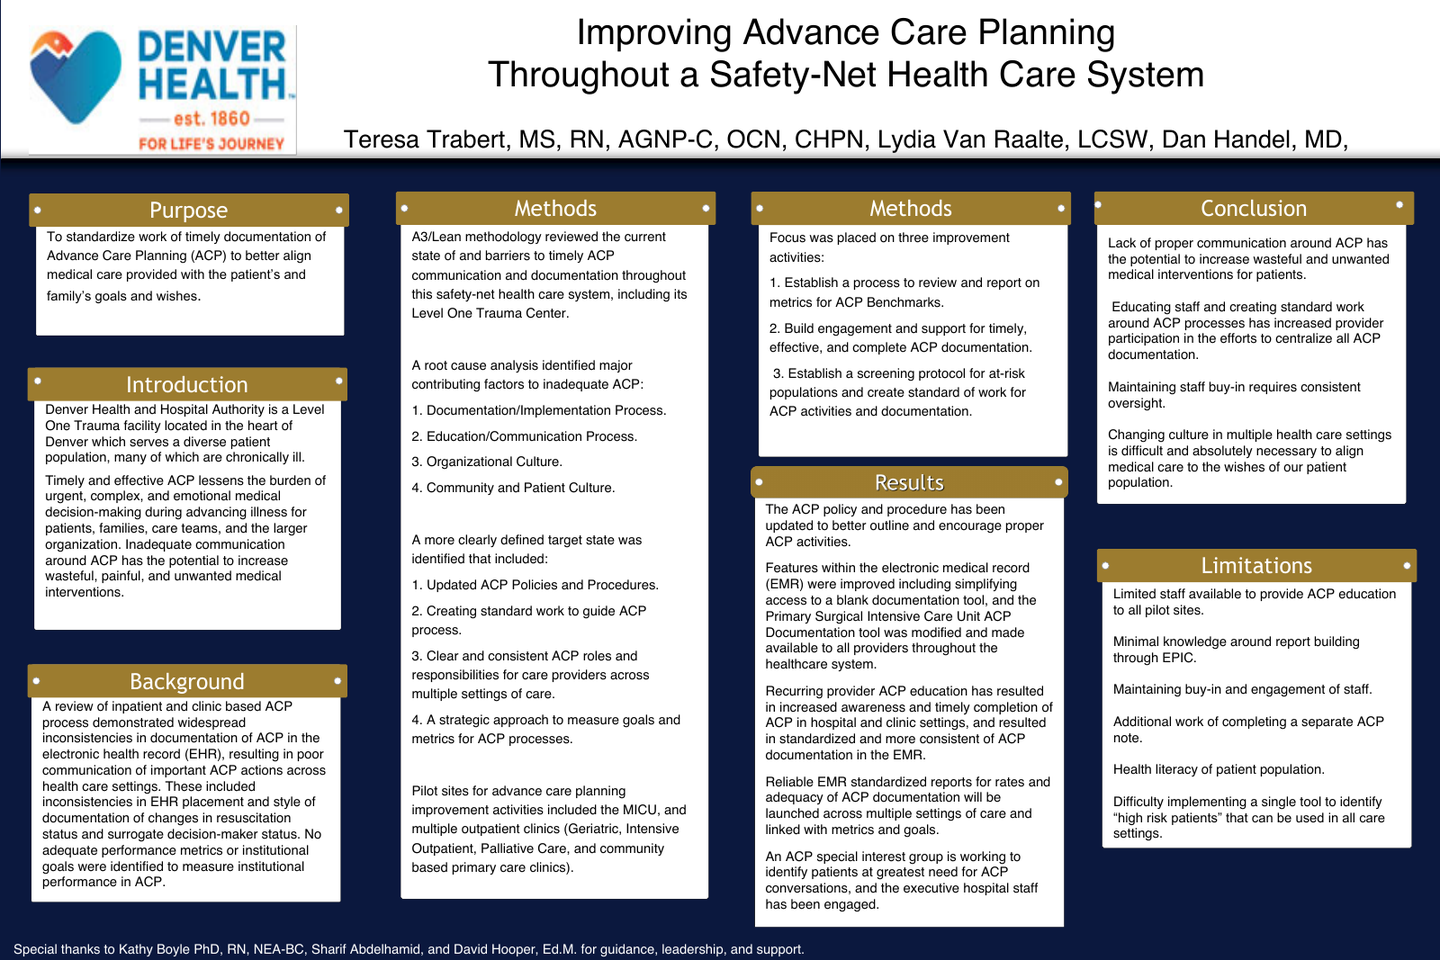 Improving Advance Care Planning Throughout a Safety-Net